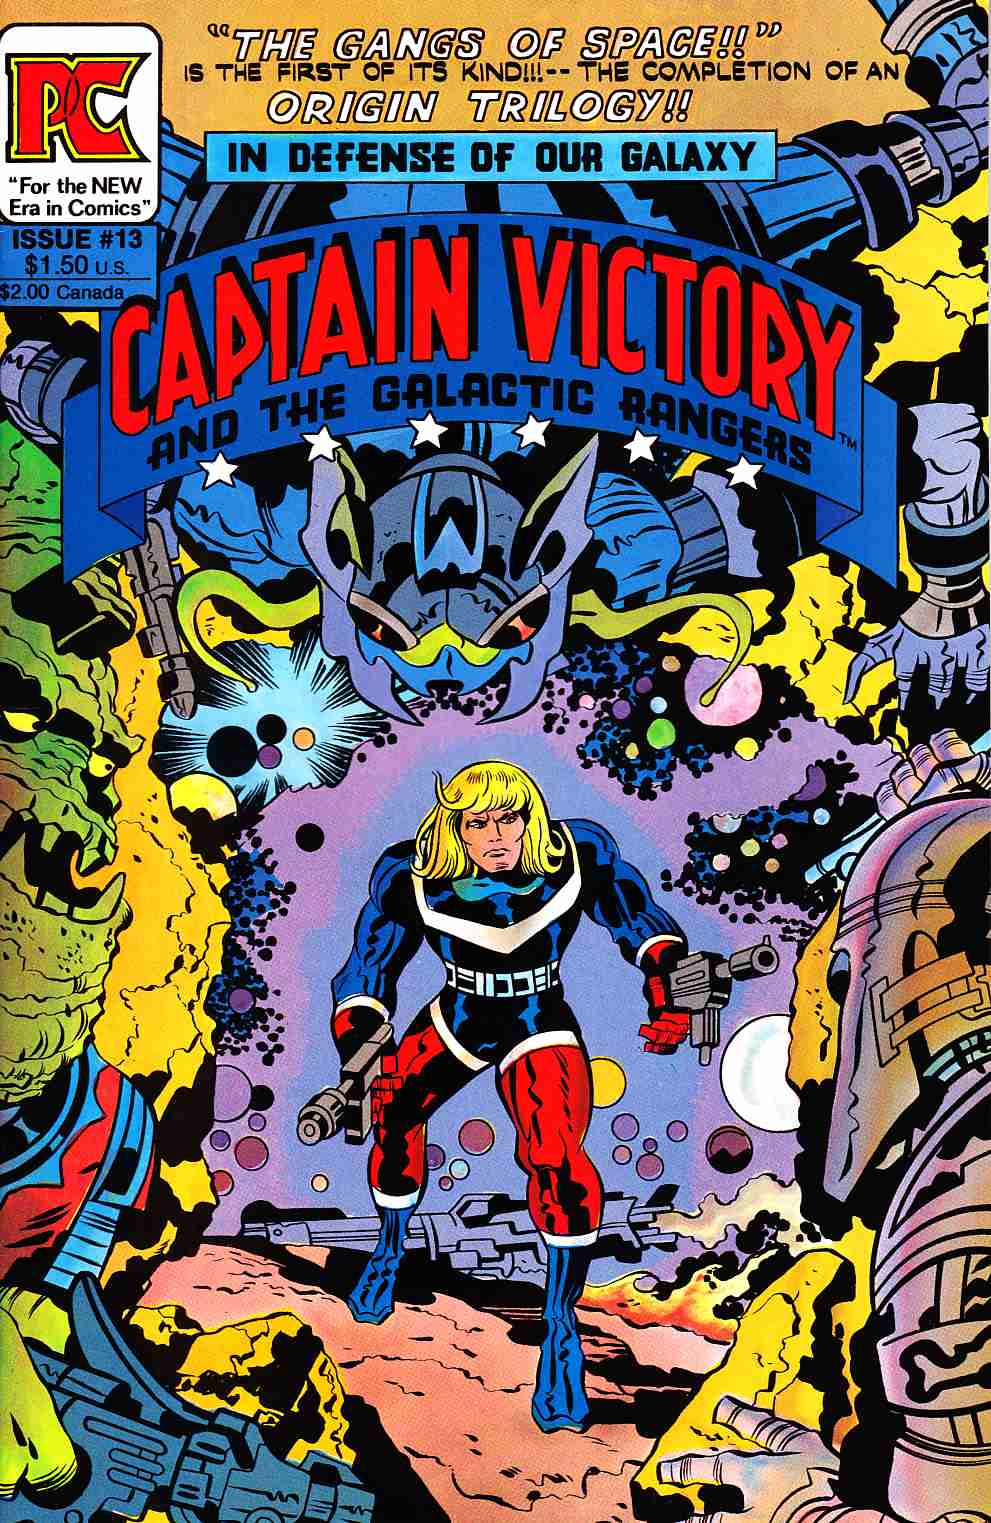 Captain Victory And The Galactic Rangers #13 [Pacific Comic] THUMBNAIL